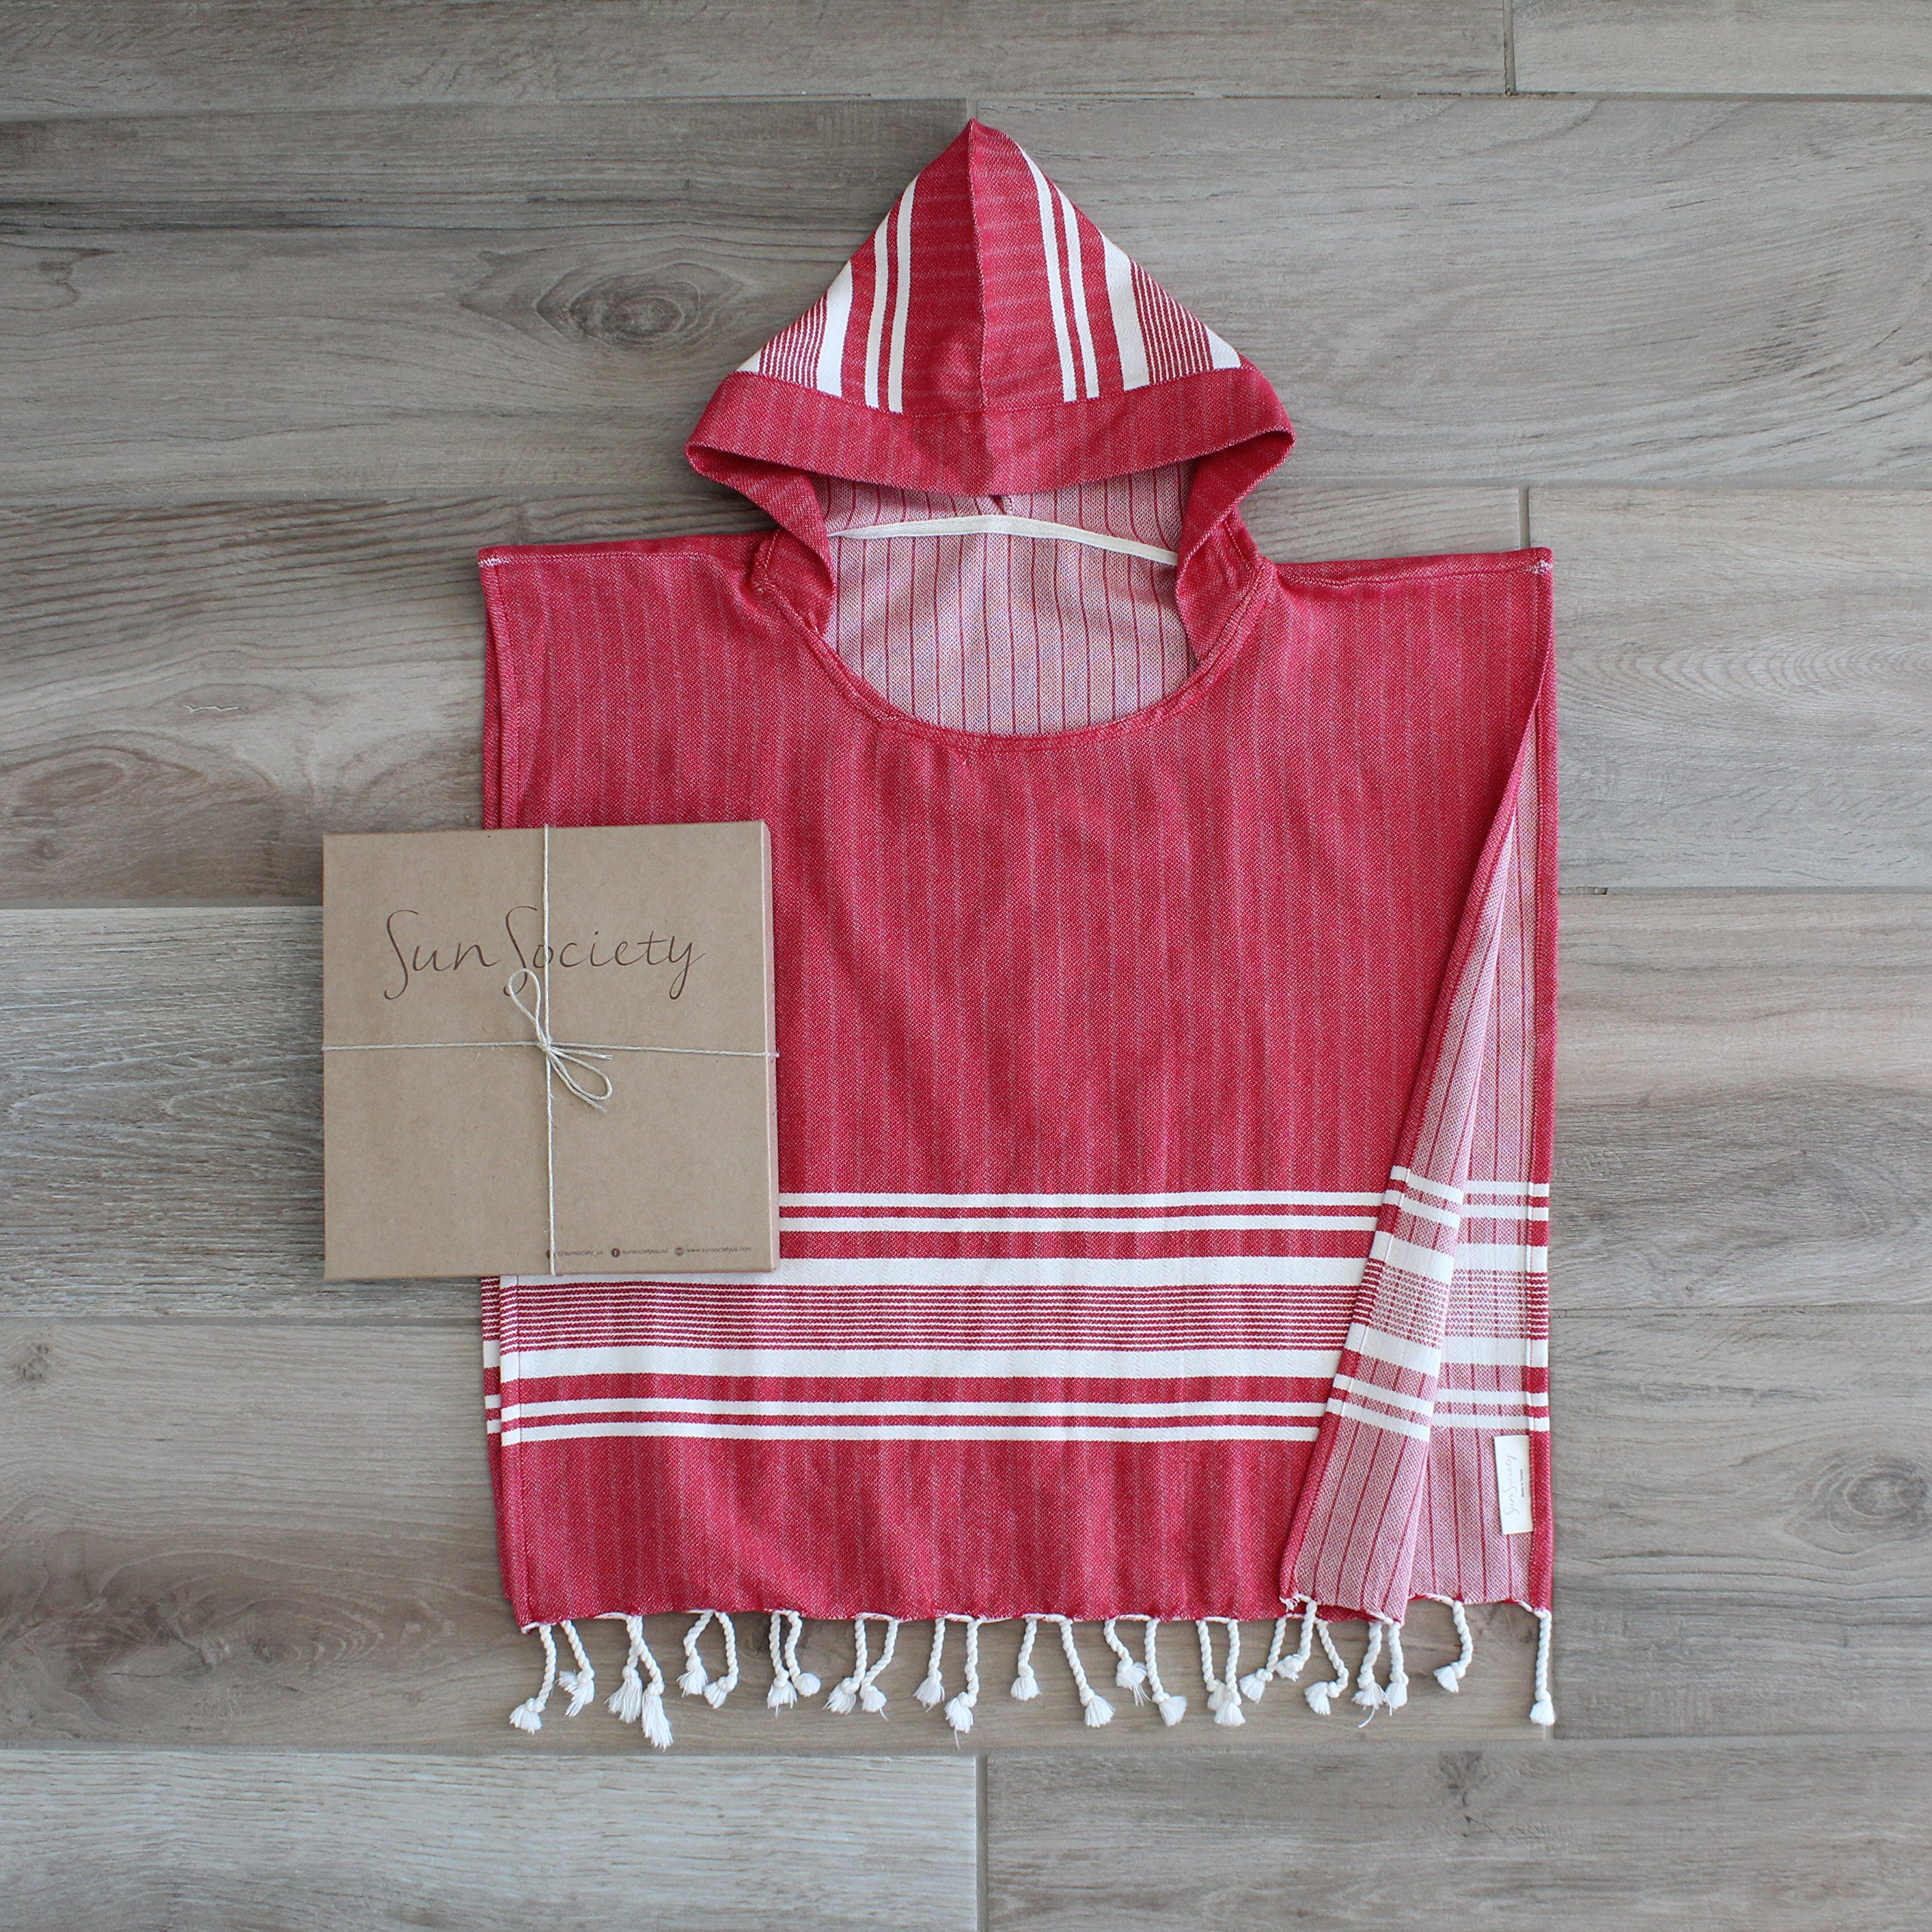 Sun Society Children's Poncho Towel - Sol Red. Hooded. Comes in Gift Box, 100% Cotton